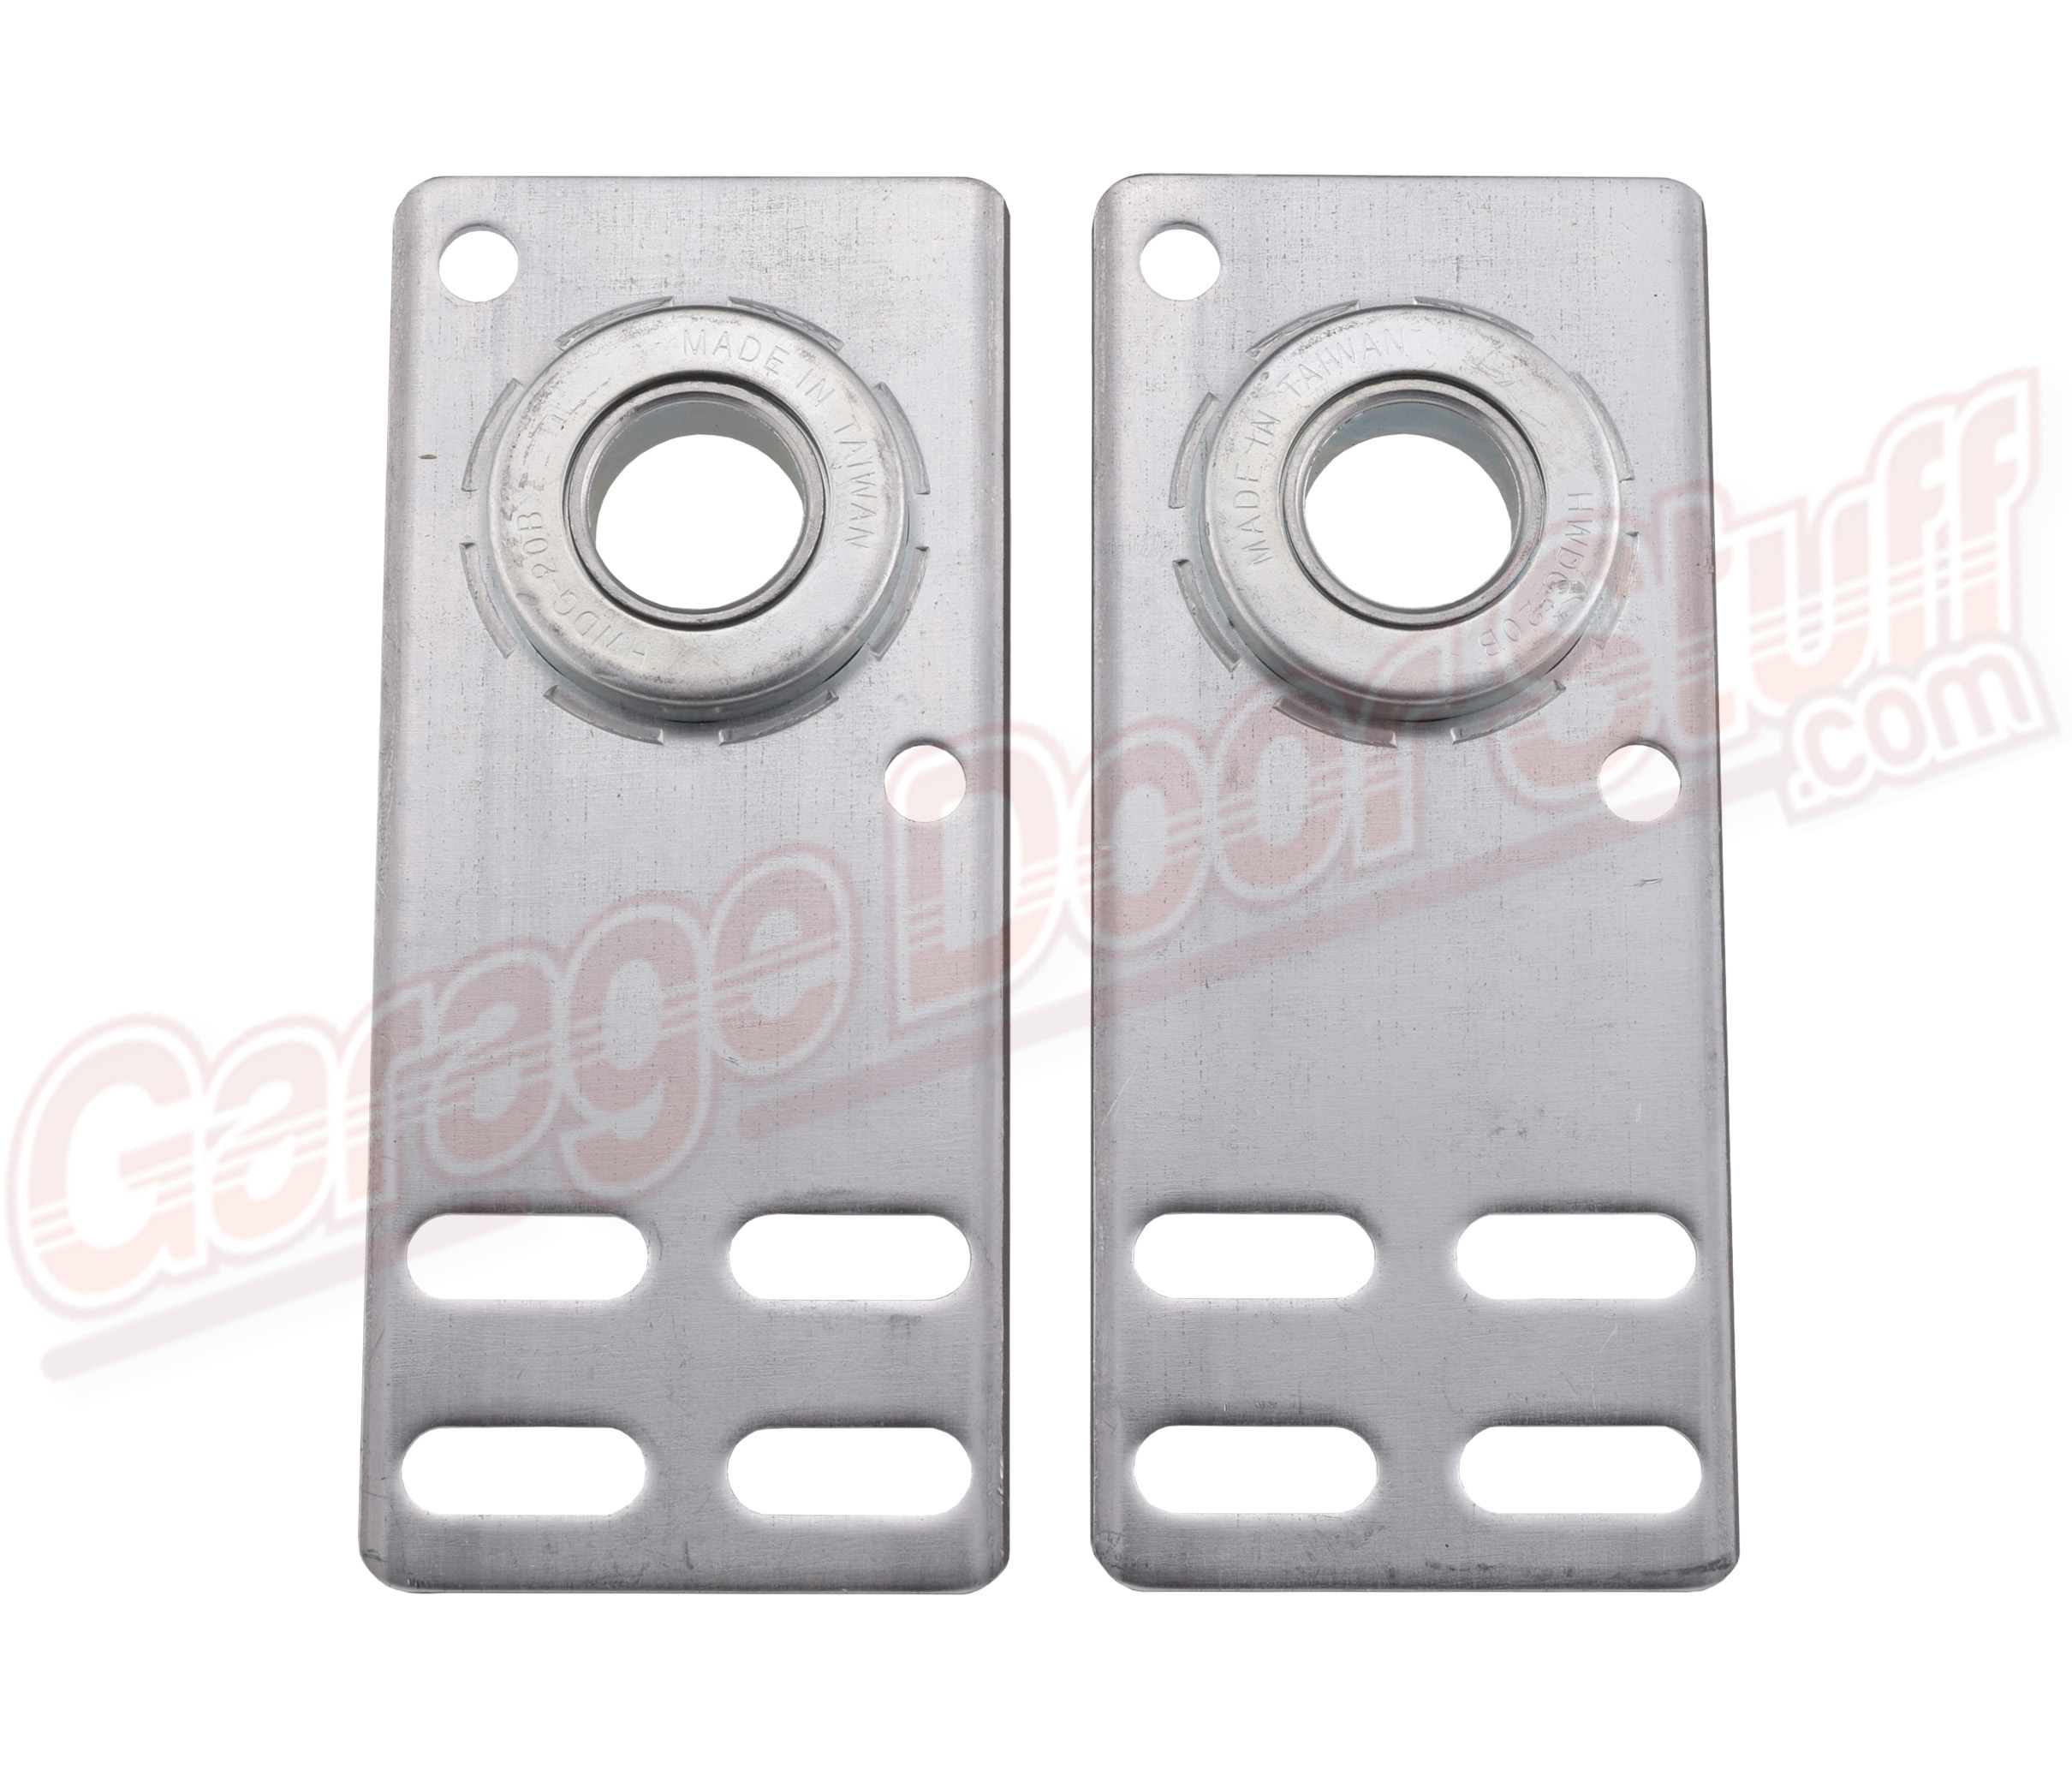 Garage Door Bearing Plate 6 5/8   sc 1 st  Garage Door Stuff & Garage Door Bearing Plate 6 5/8